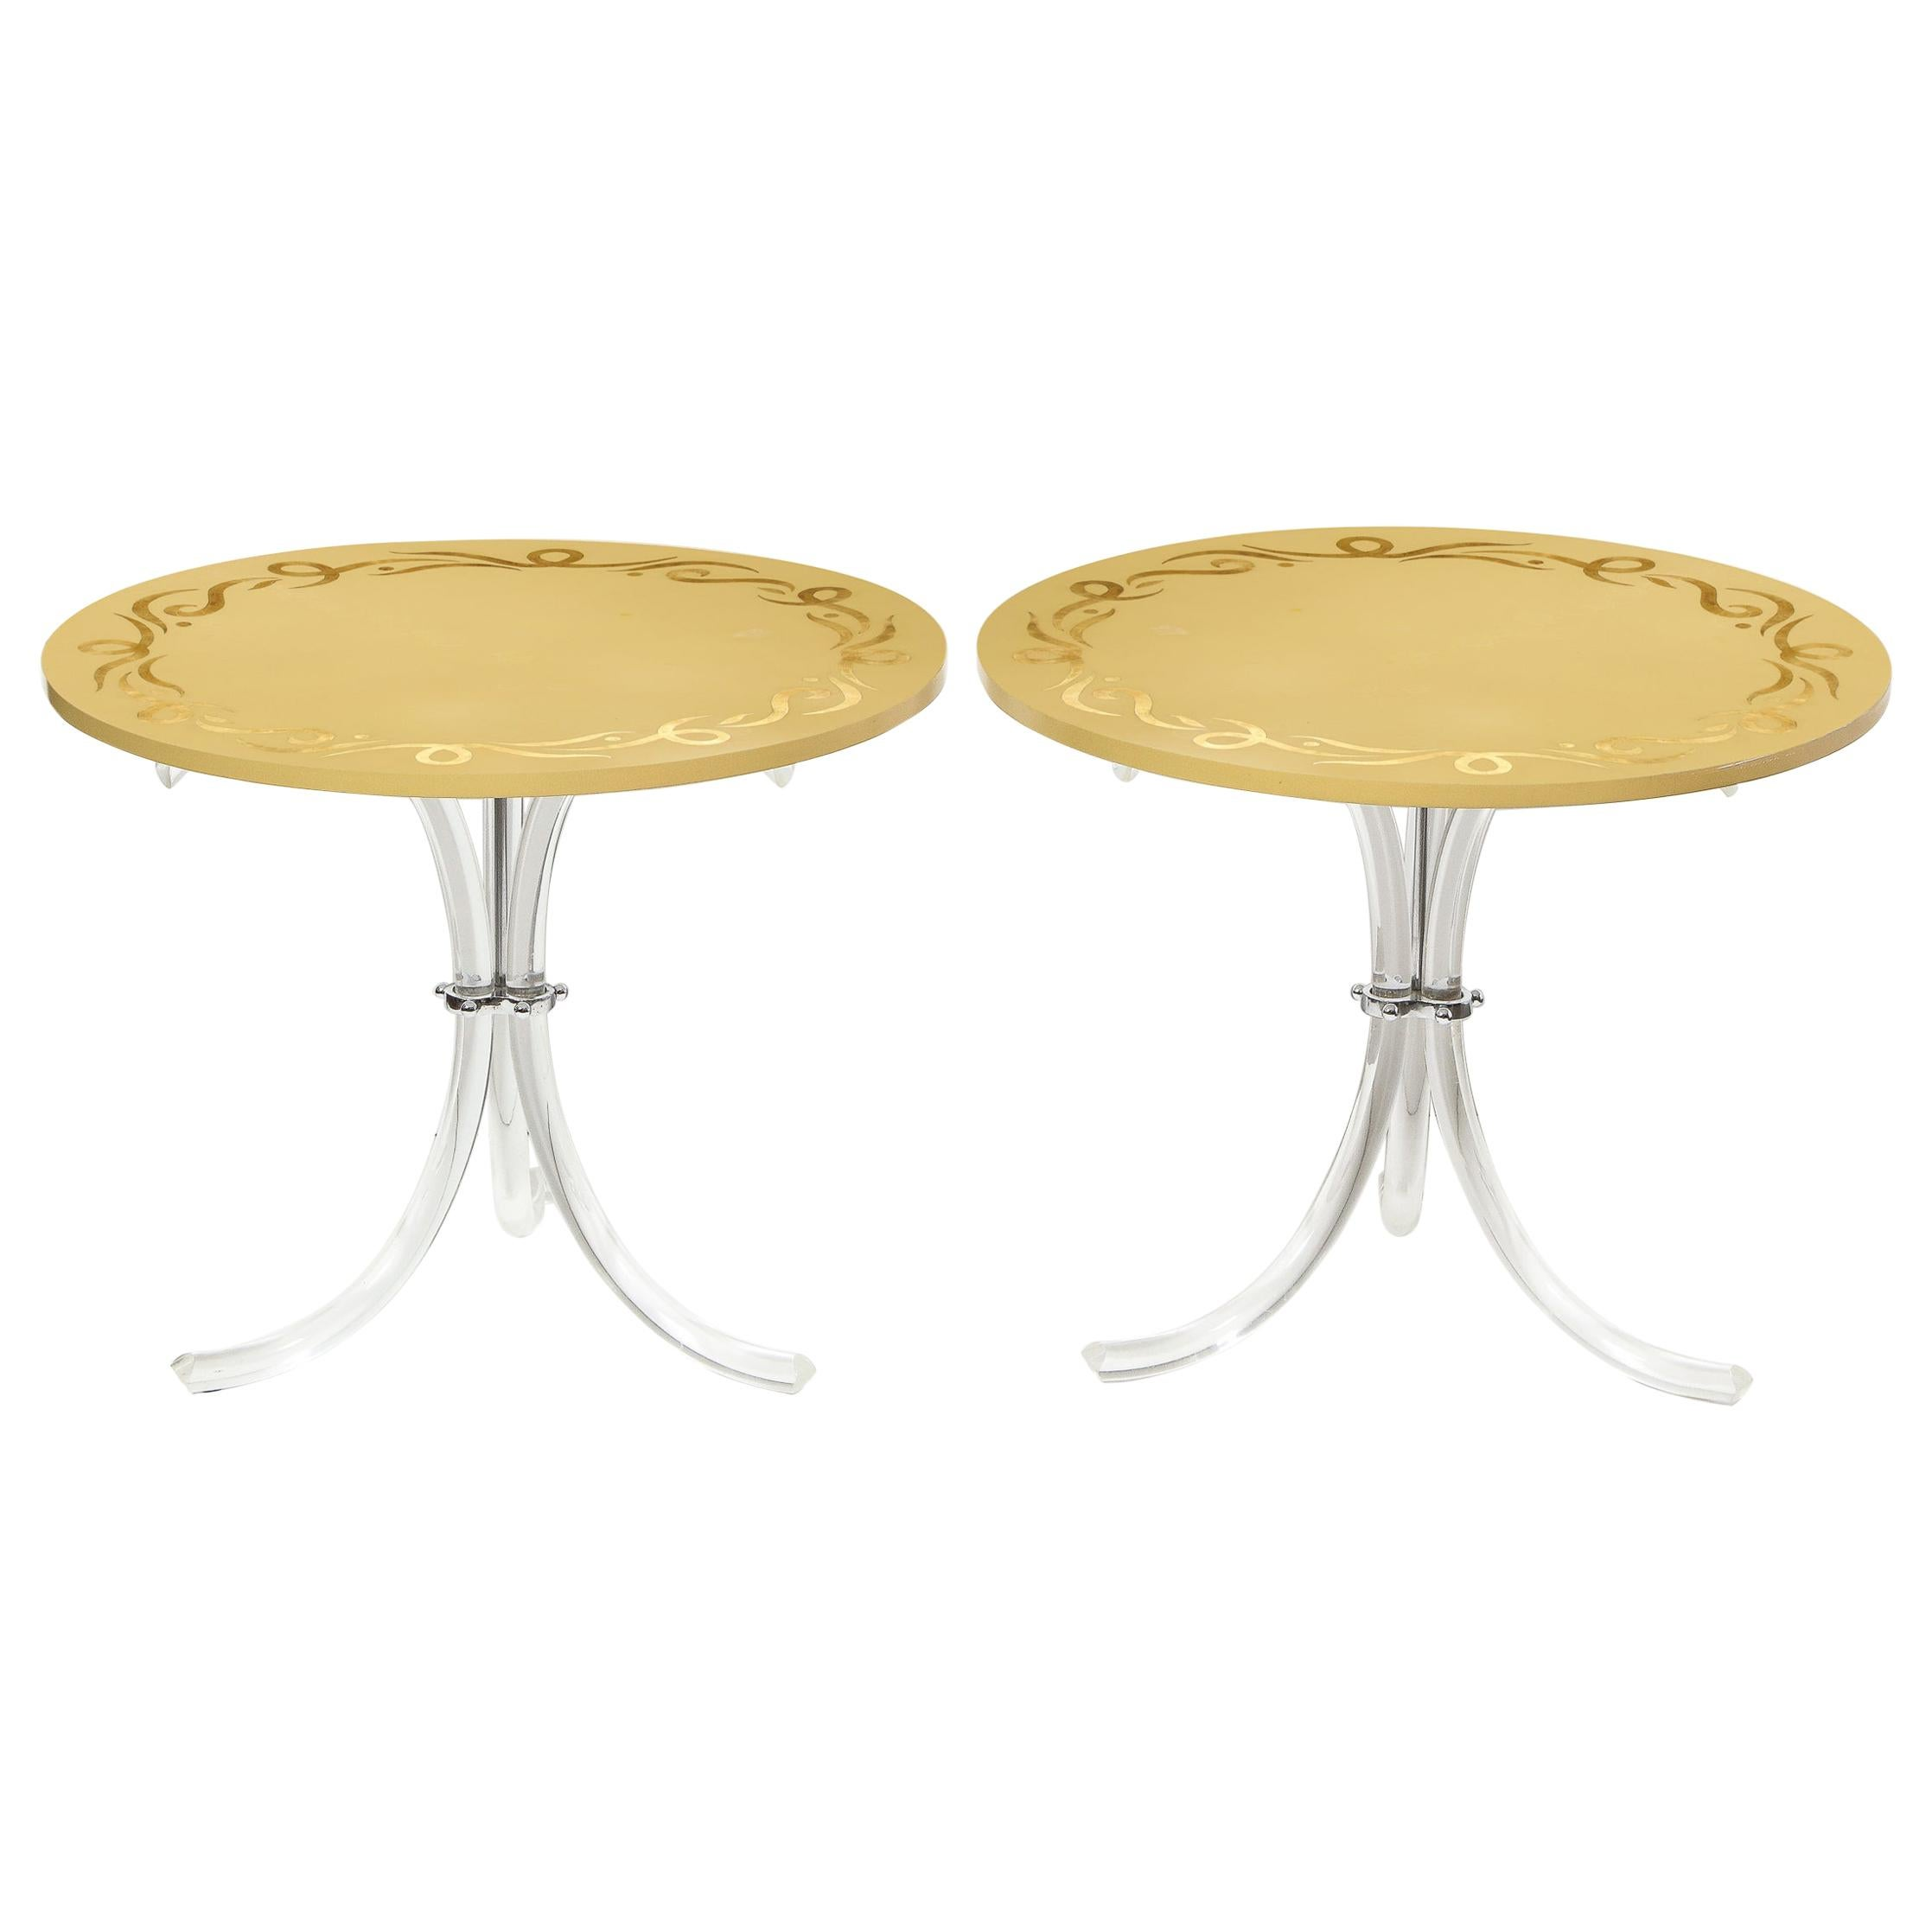 Pair of Midcentury Gilded Tan Tables with Lucite Legs, Manner of Dorothy Draper